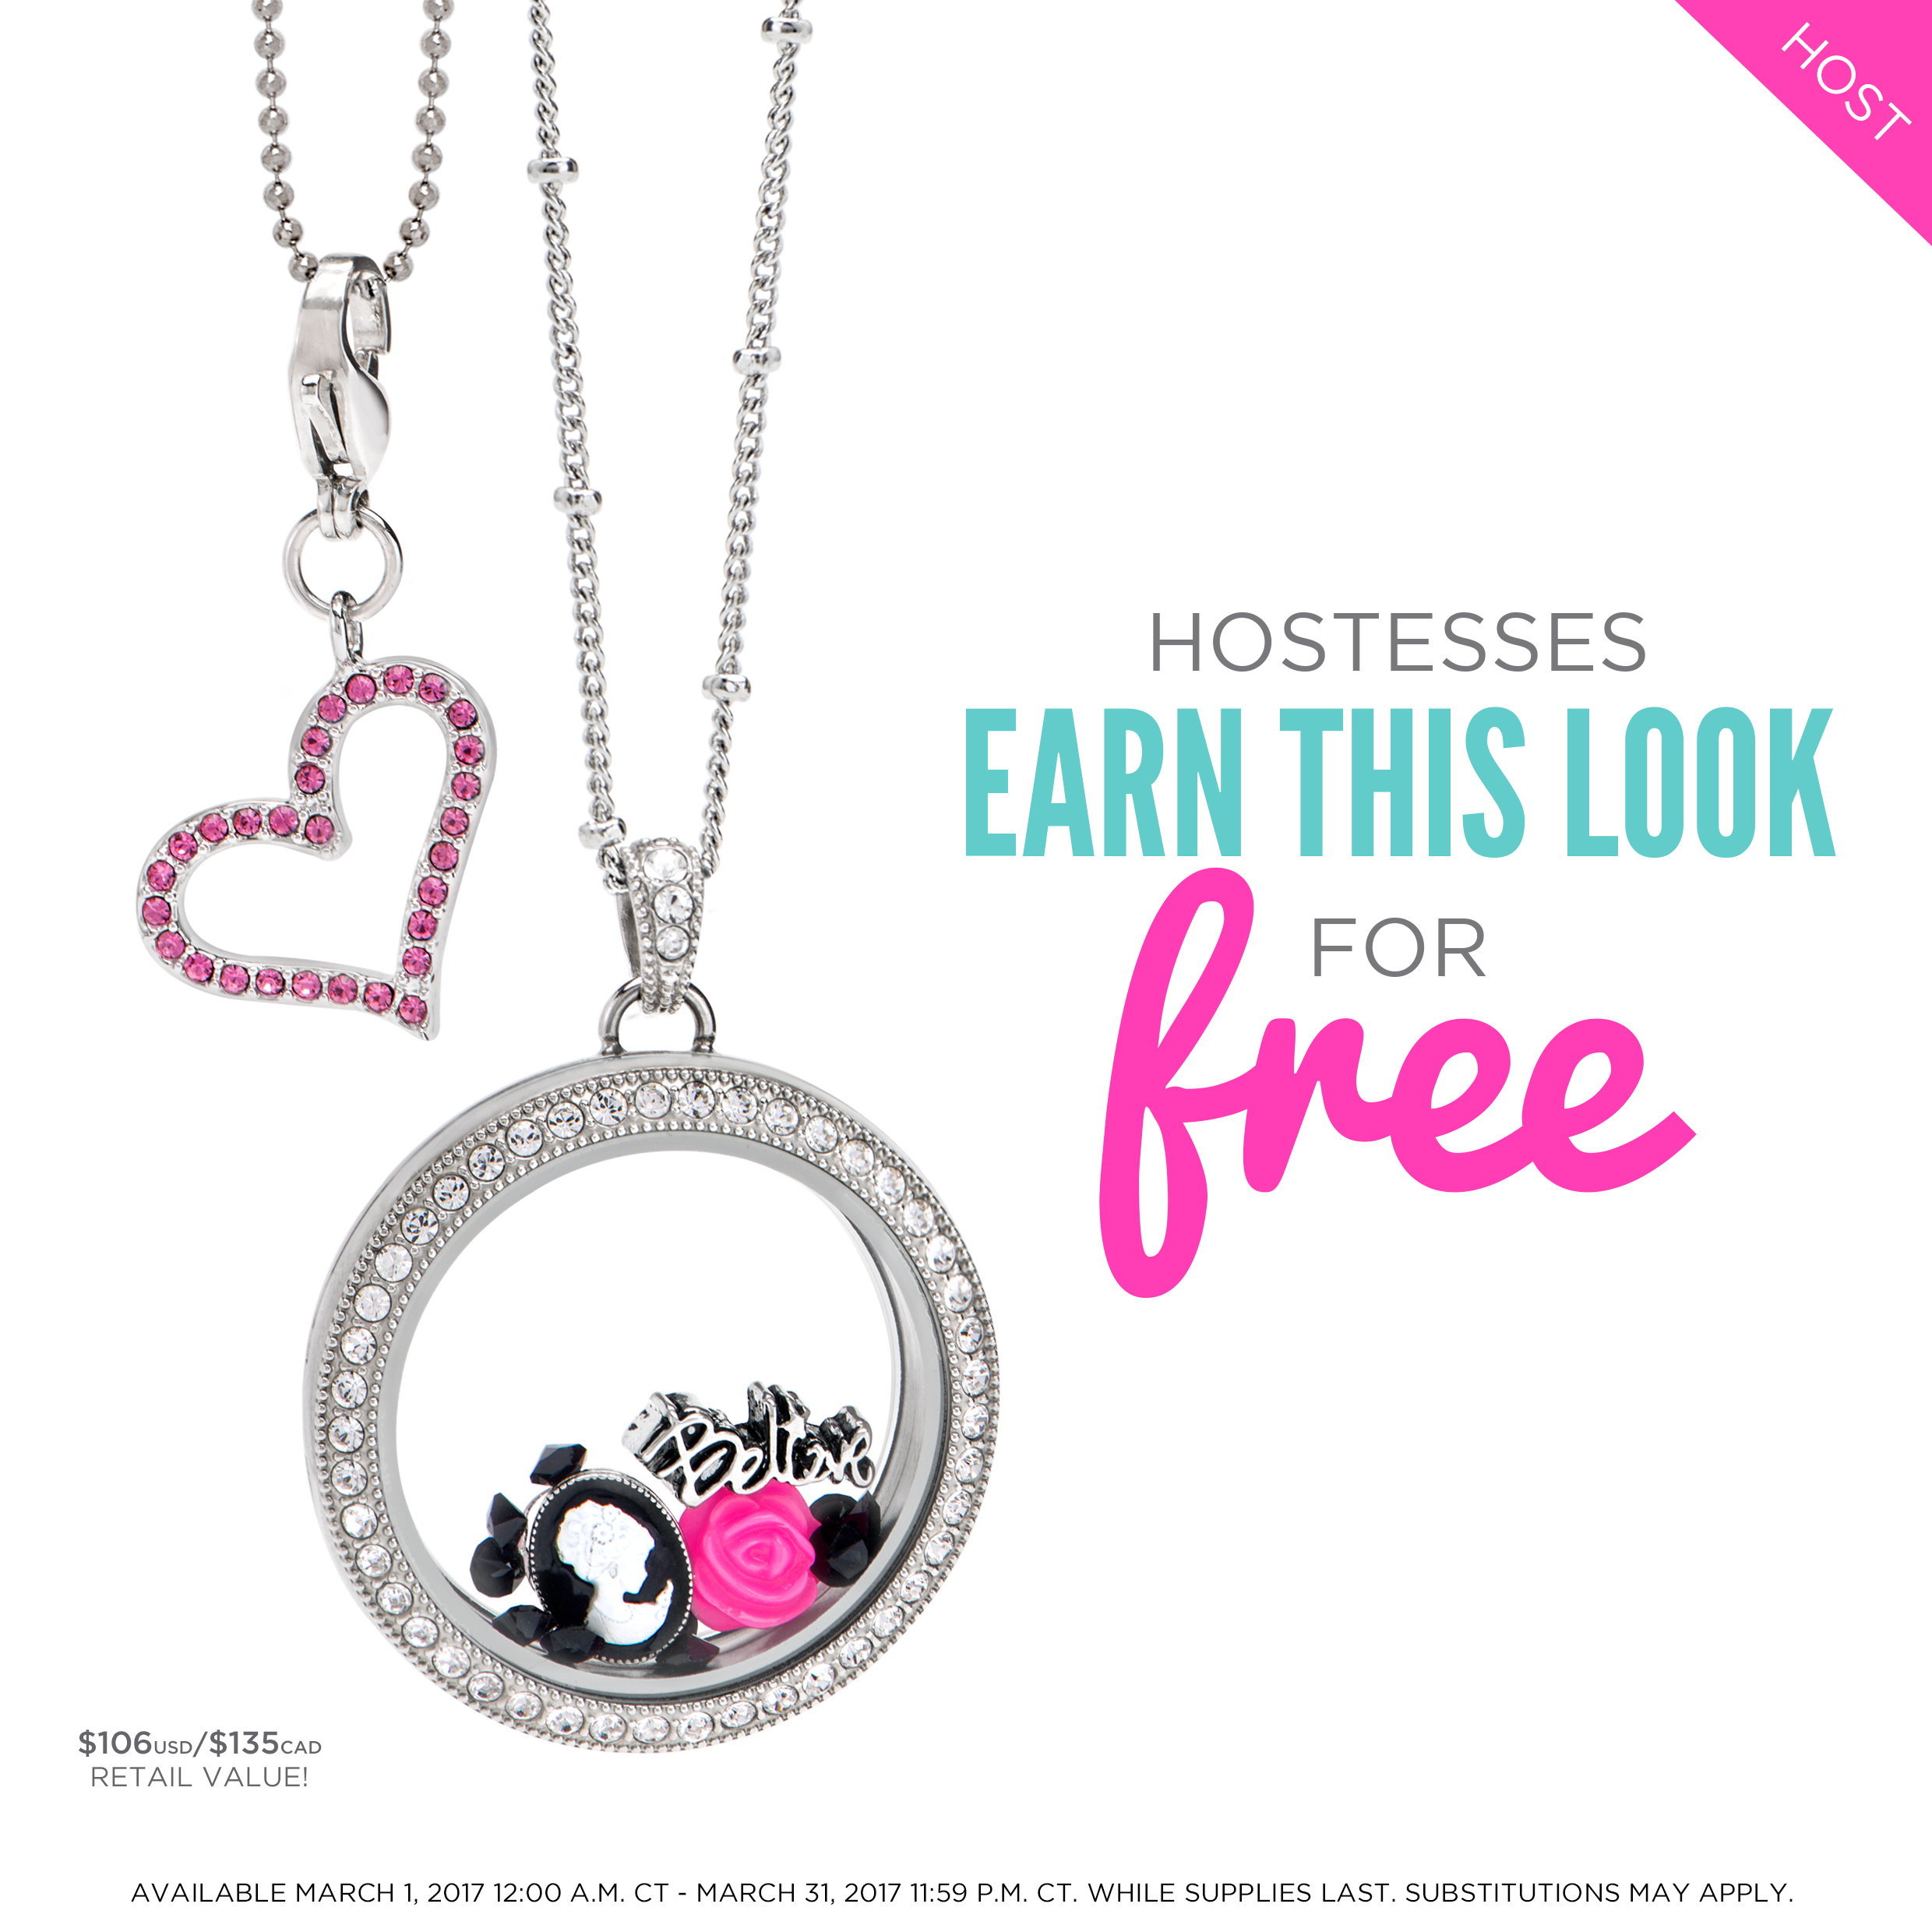 Origami Owl Over The Heart Chain Take A Peek At The March Hostess Exclusive Share It